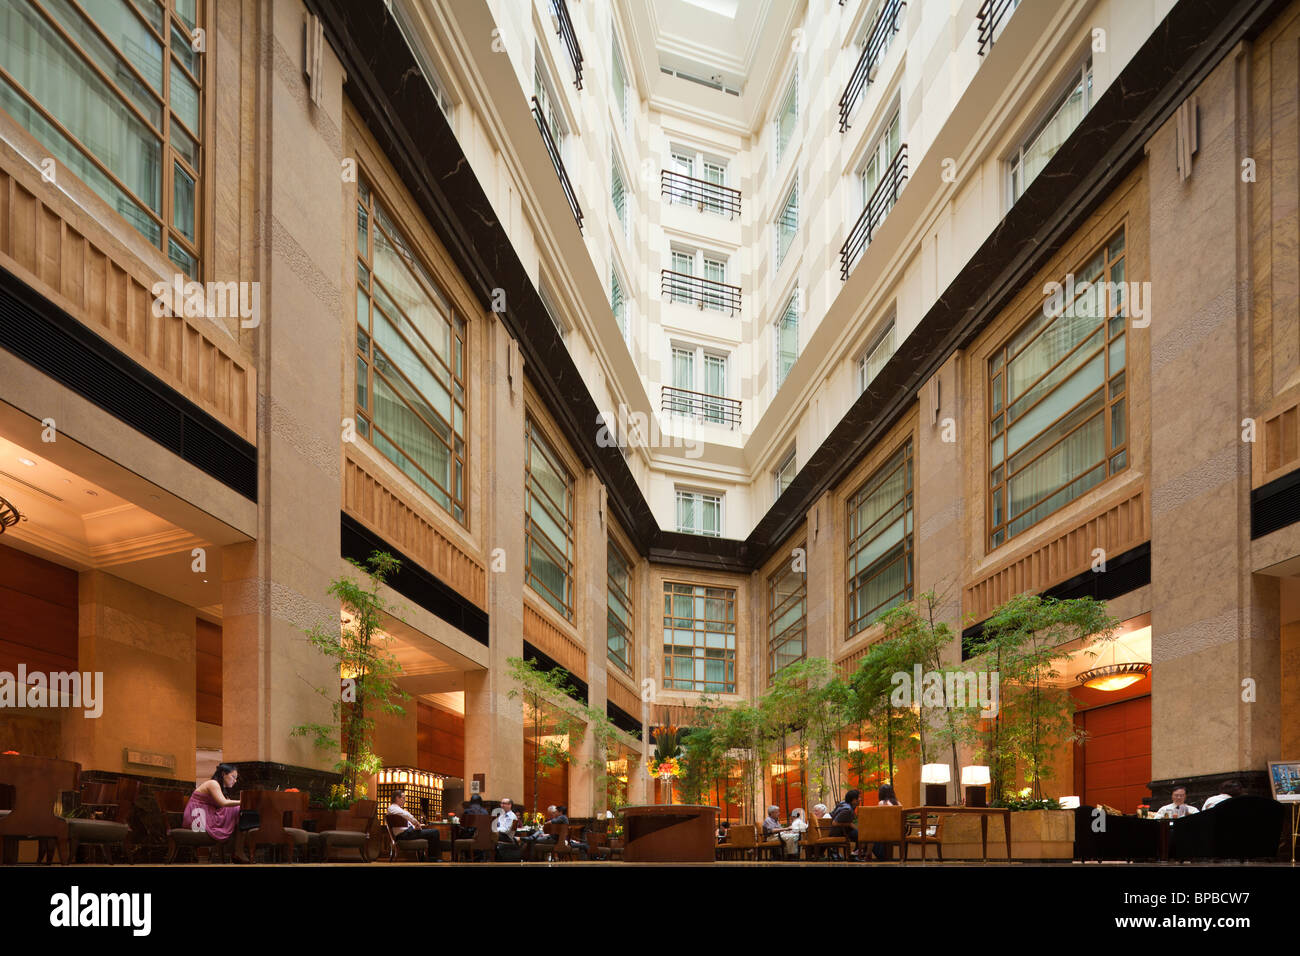 interior of the Fullerton Hotel Singapore - Stock Image